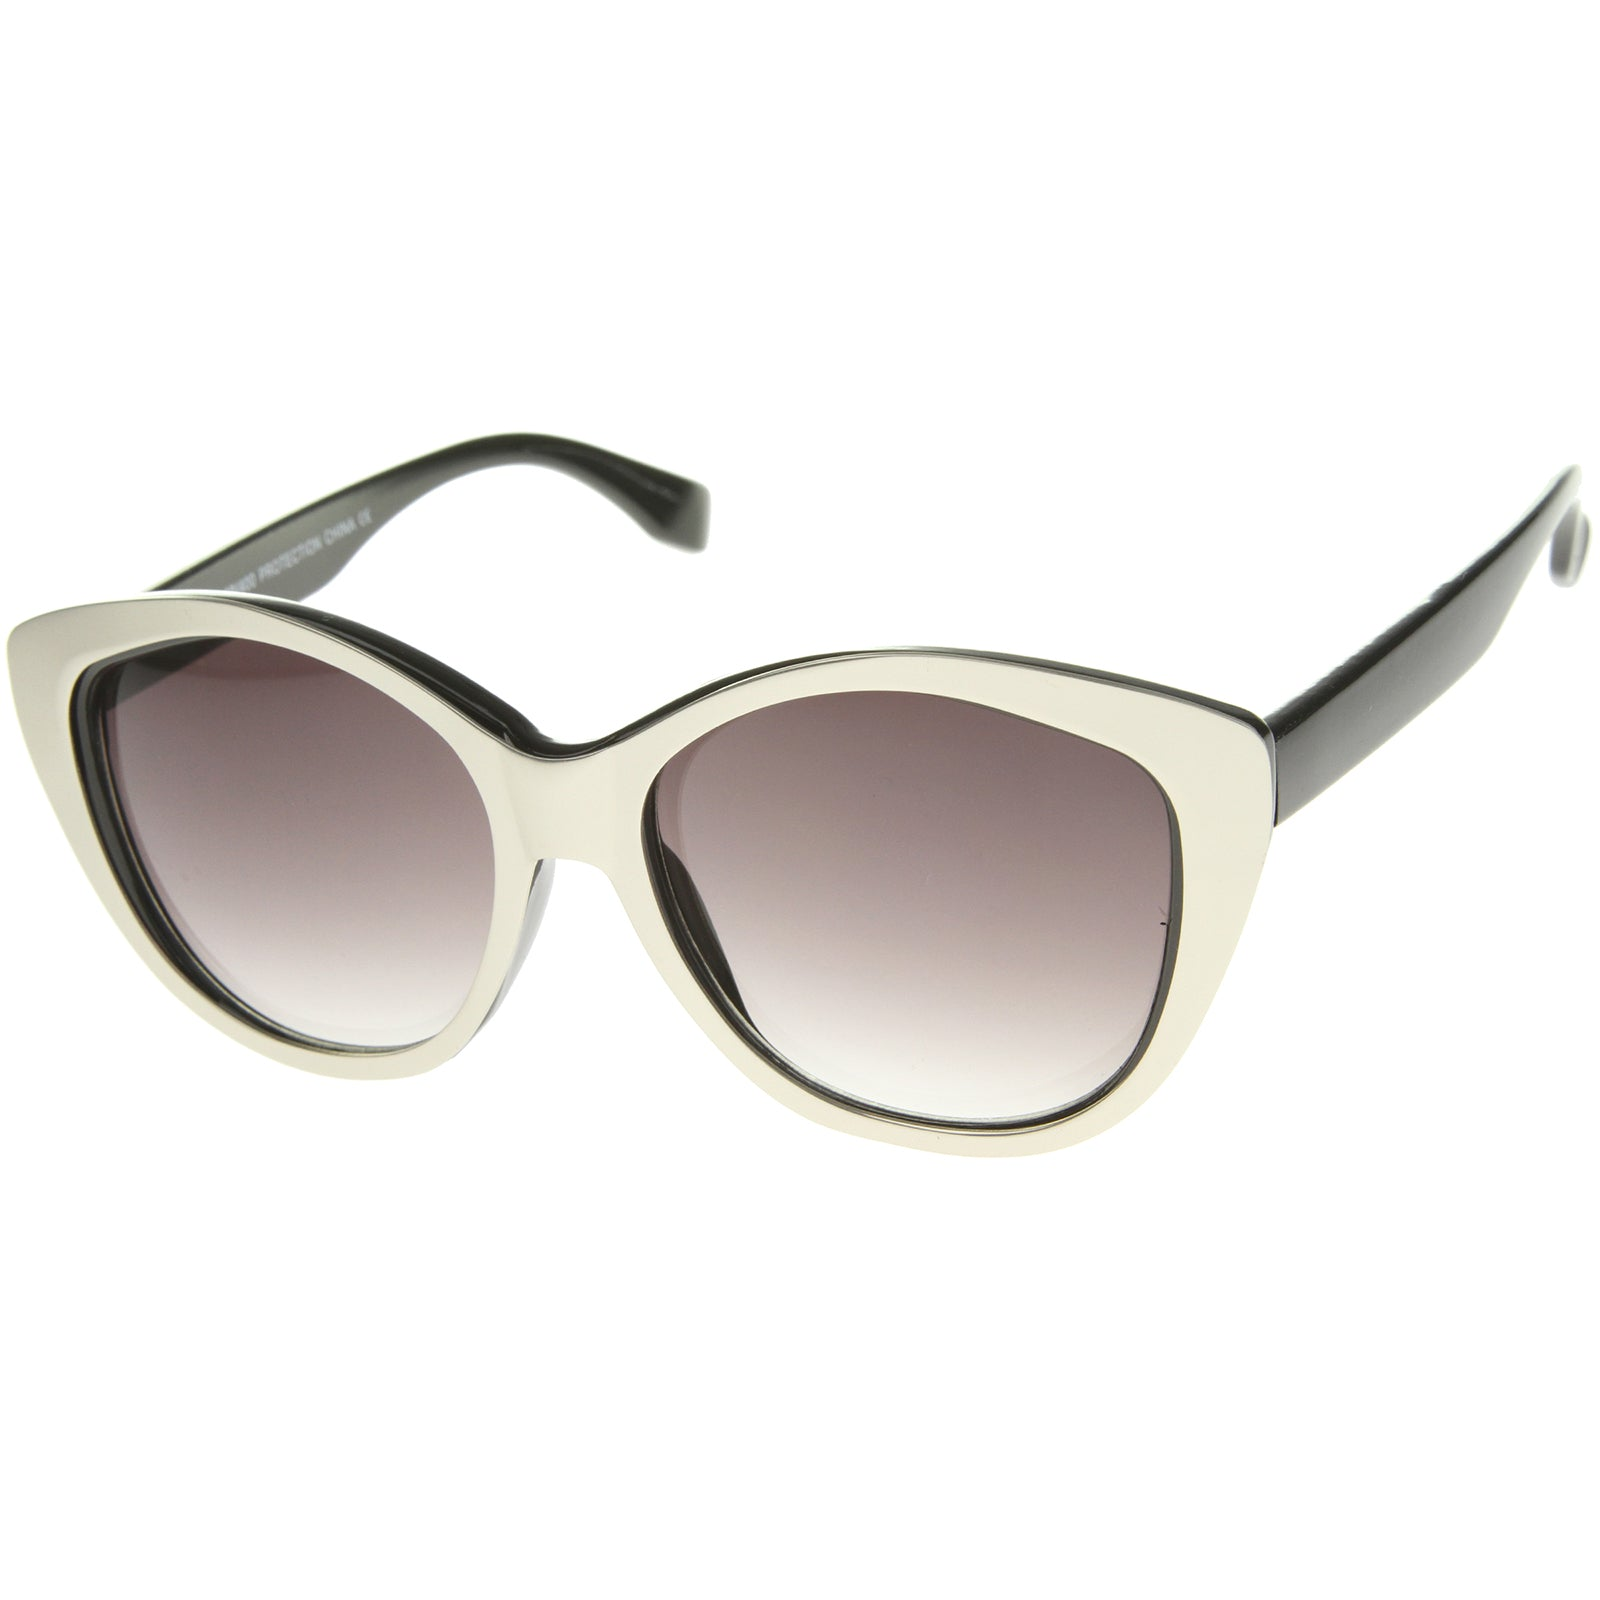 Women's High Fashion Two-Toned Tinted Lens Oversize Cat Eye Sunglasses 55mm - sunglass.la - 6